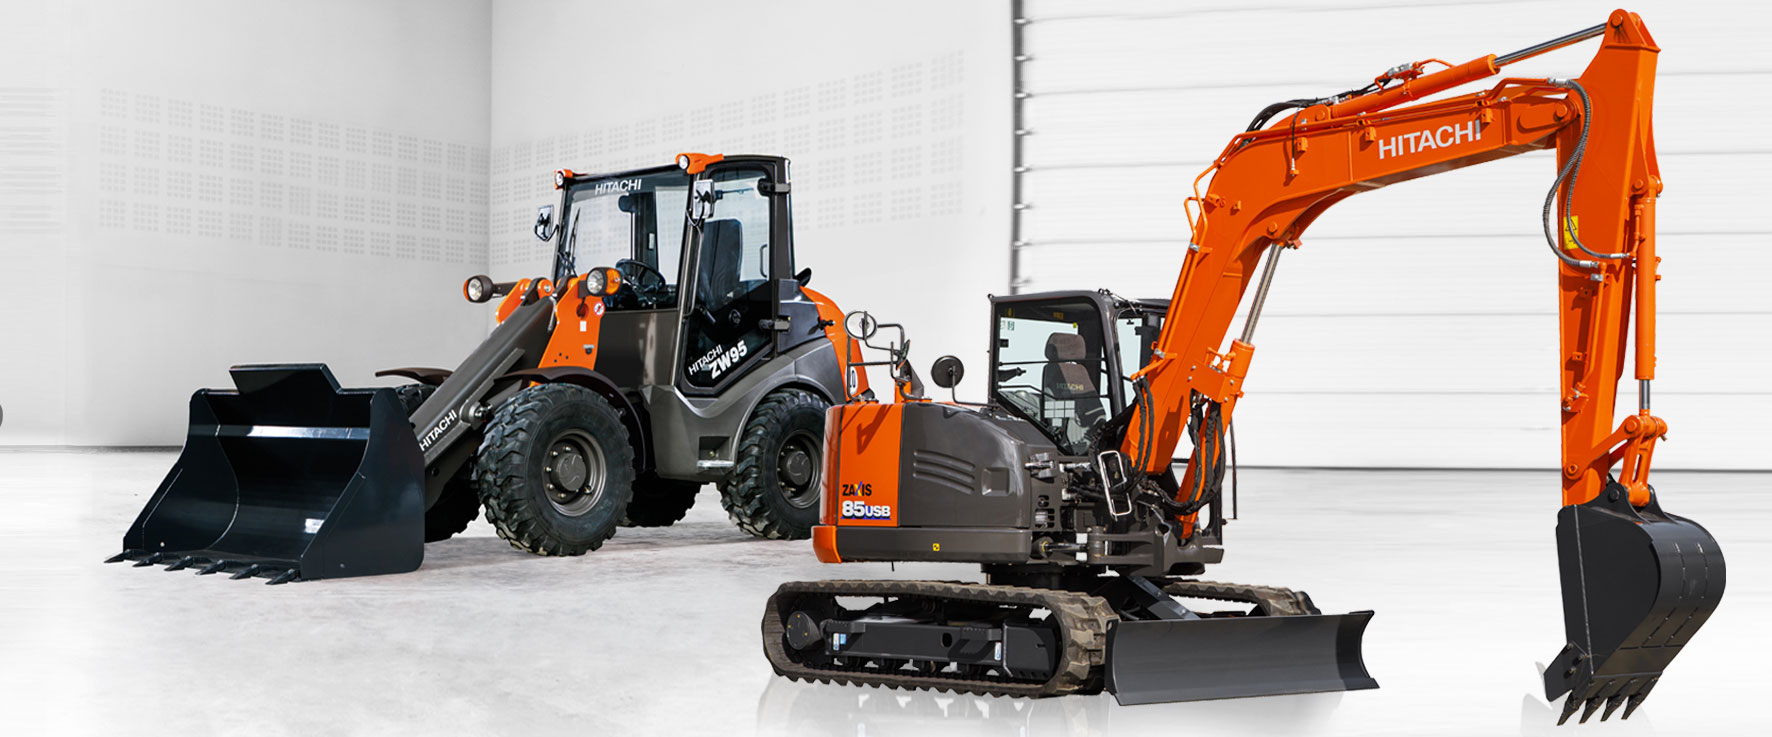 The future of the compact construction equipment market